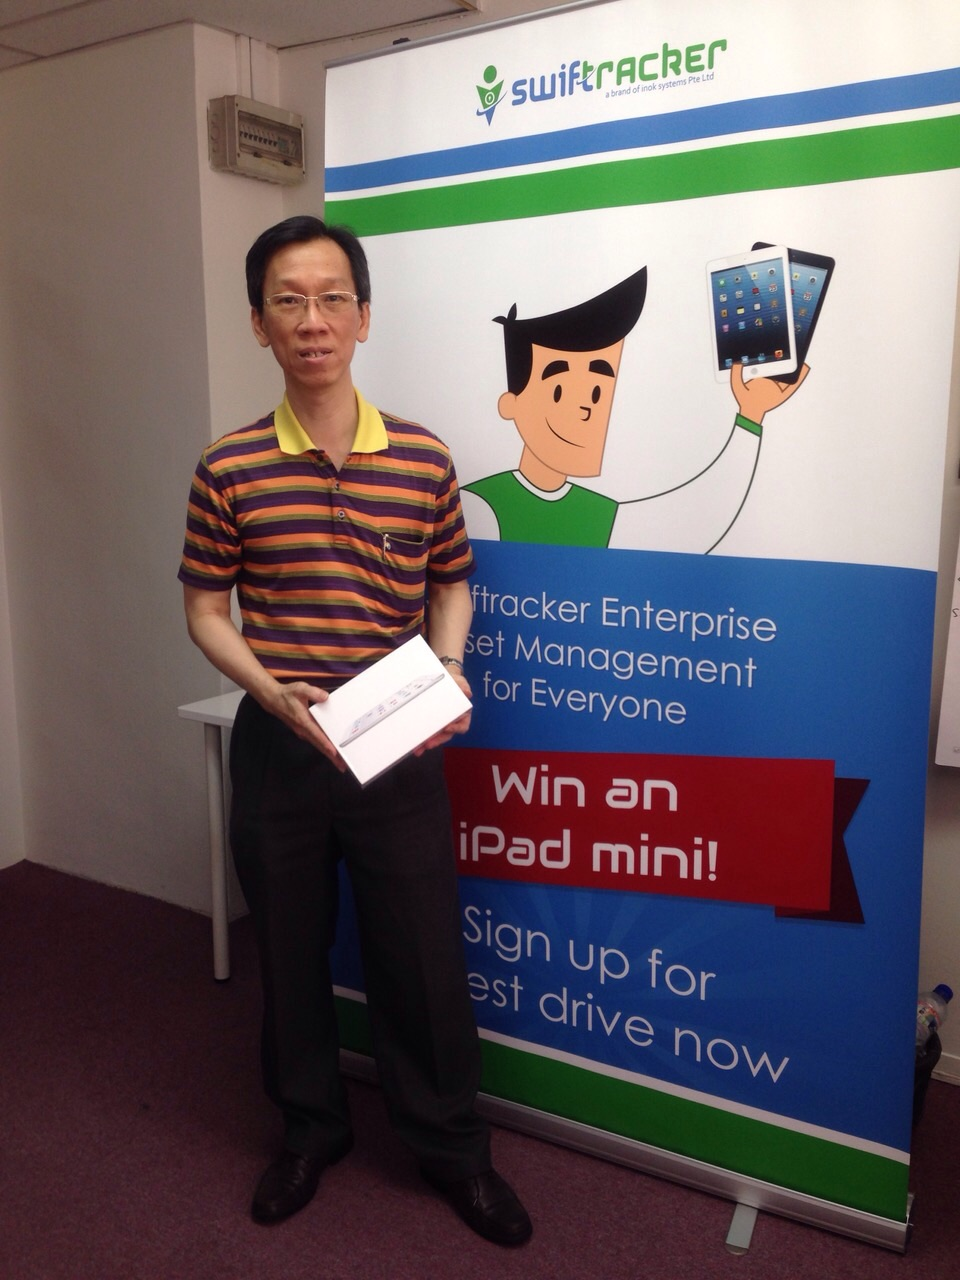 Congratulations to Andy Kang who won an iPAD mini for signing up for our Swiftracker Test Drive during Cloud Expo Asia